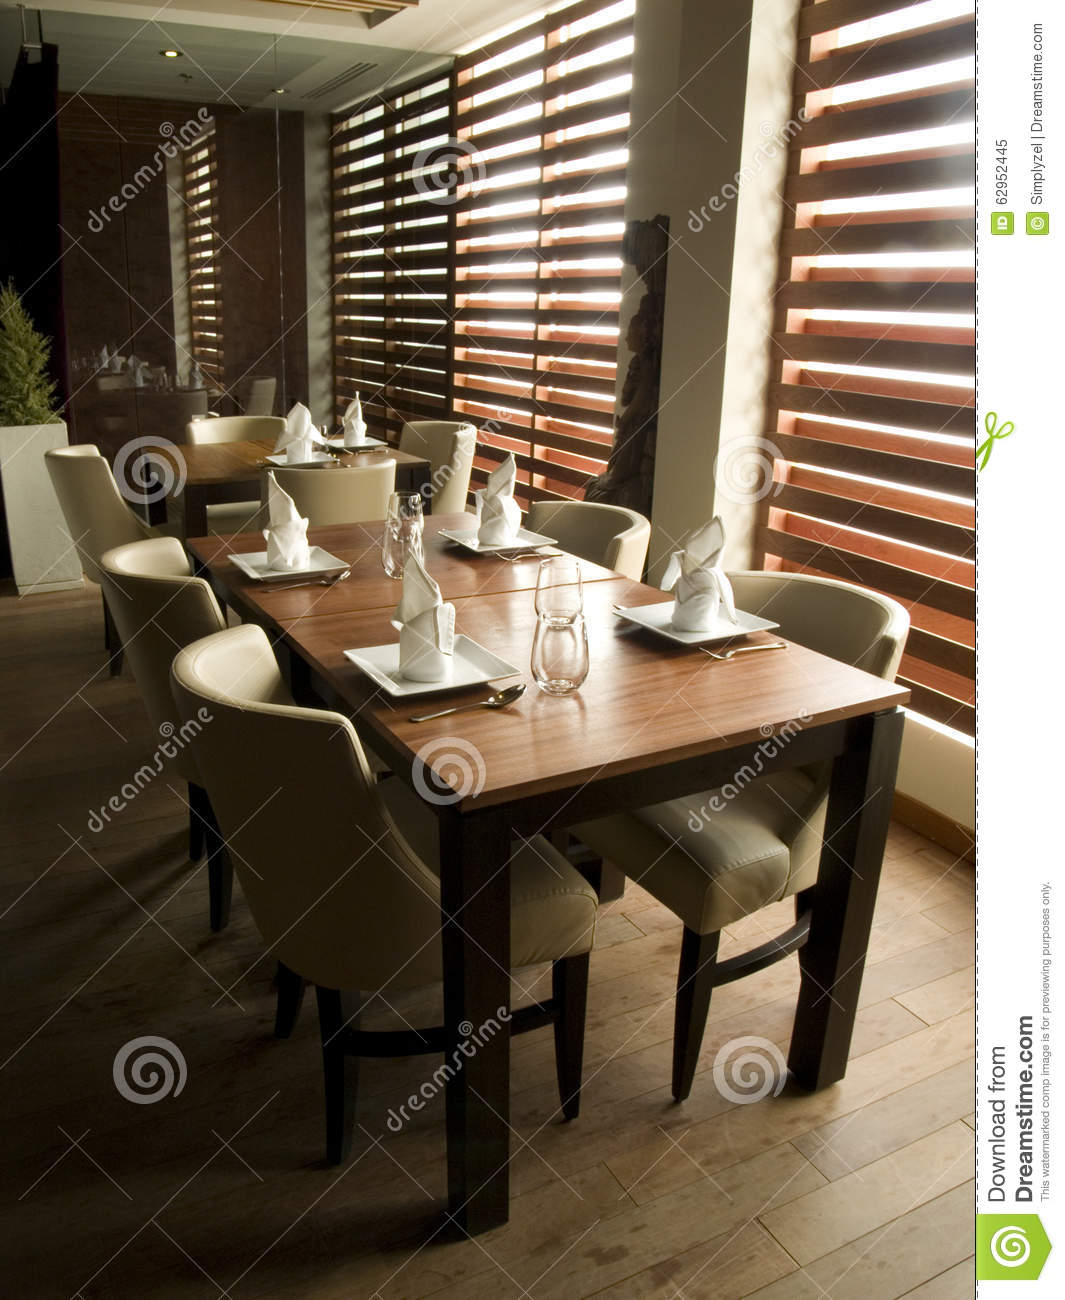 Restaurant table setting ideas - Modern Restaurant Table Setting